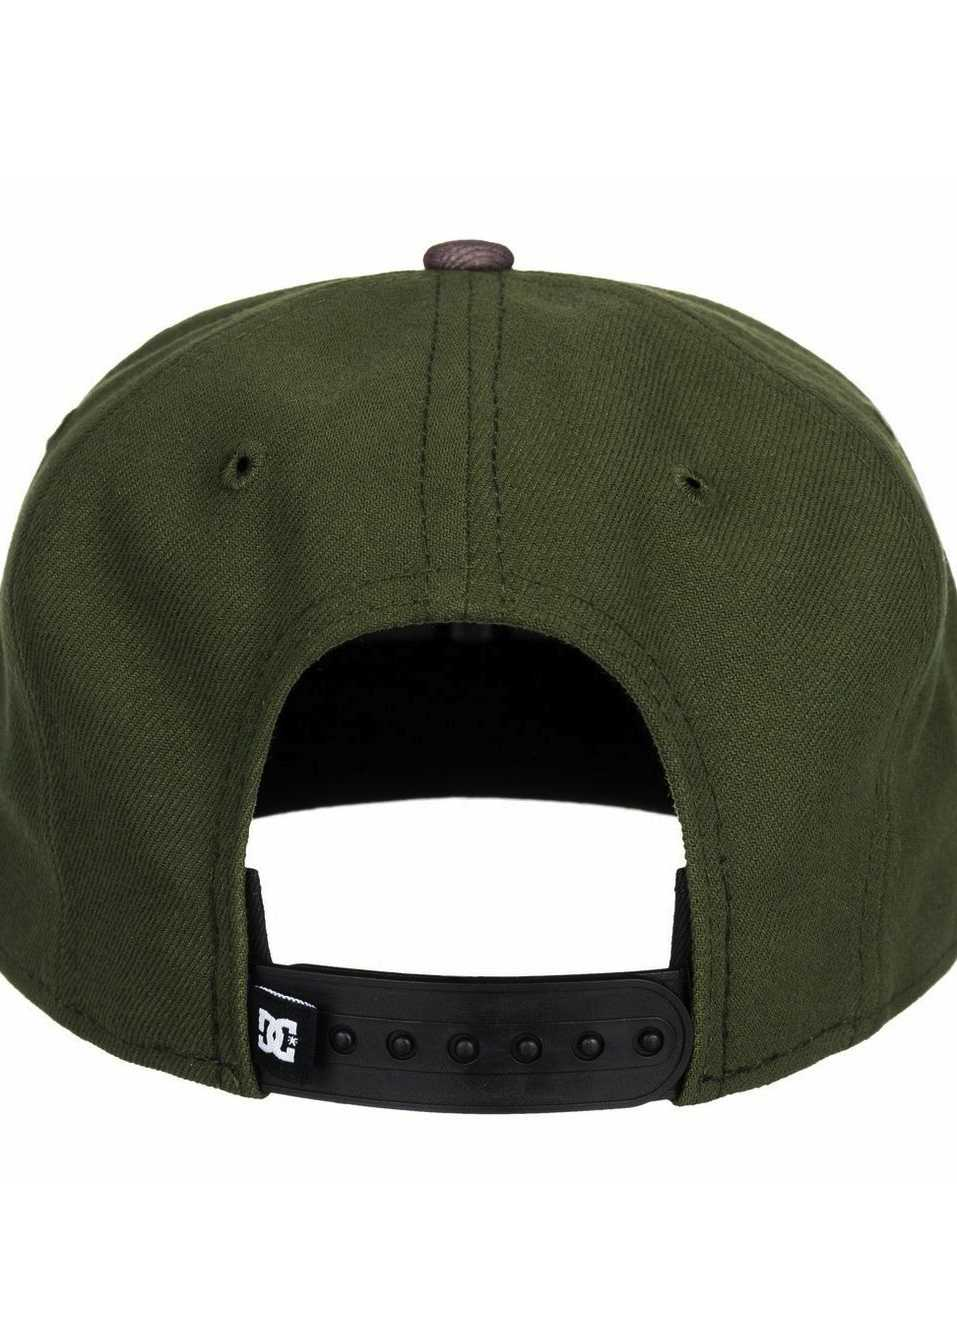 DC SHOES CAP BUZZCUT CAMO RETRO - LM BOARD STORE